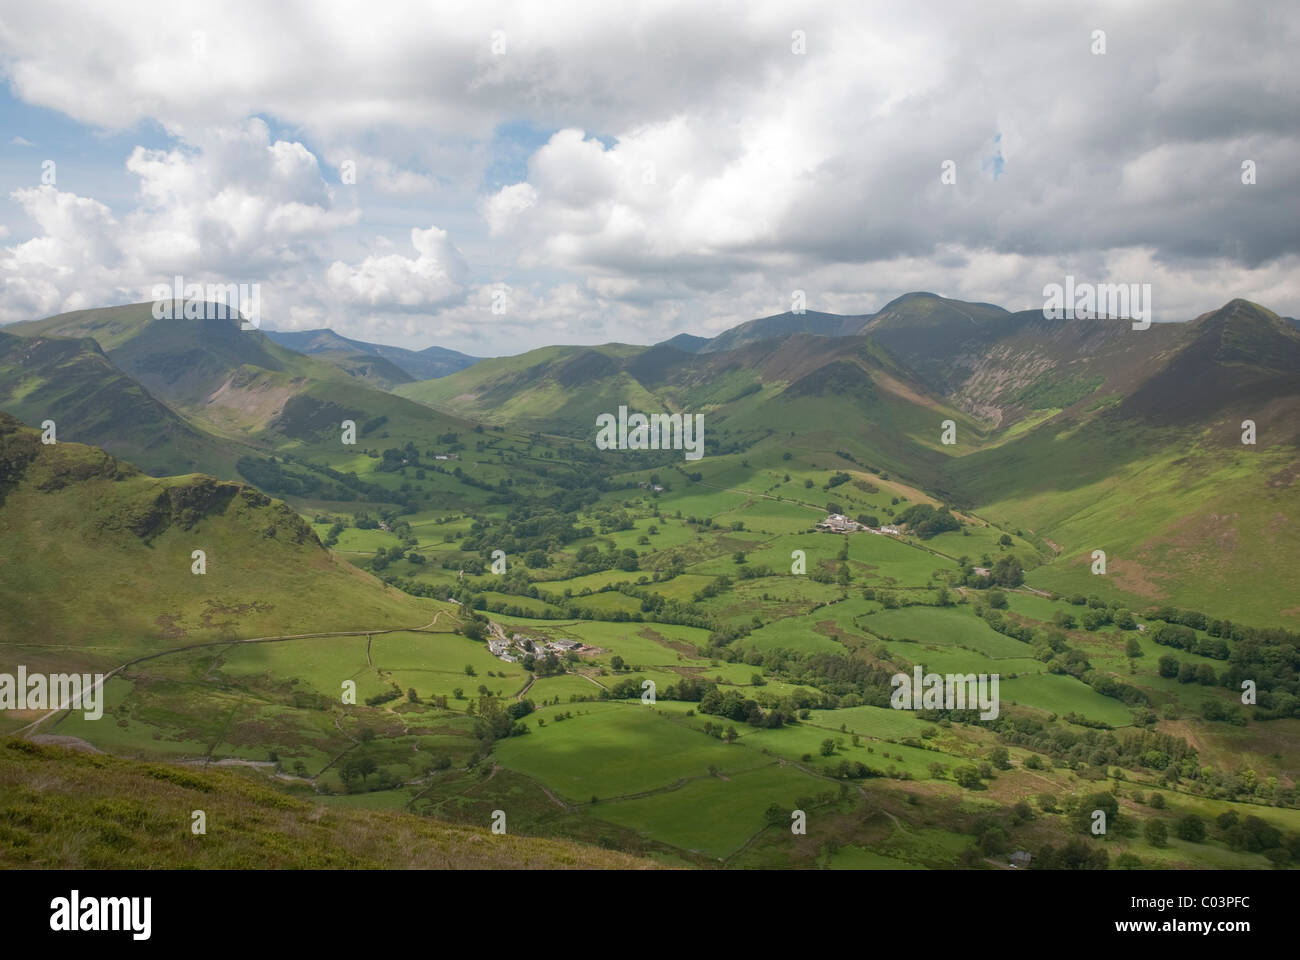 View of Newlands Valley, Little Town and Derwent Fells from near top of Catbells near Keswick, Lake District, Cumbria - Stock Image